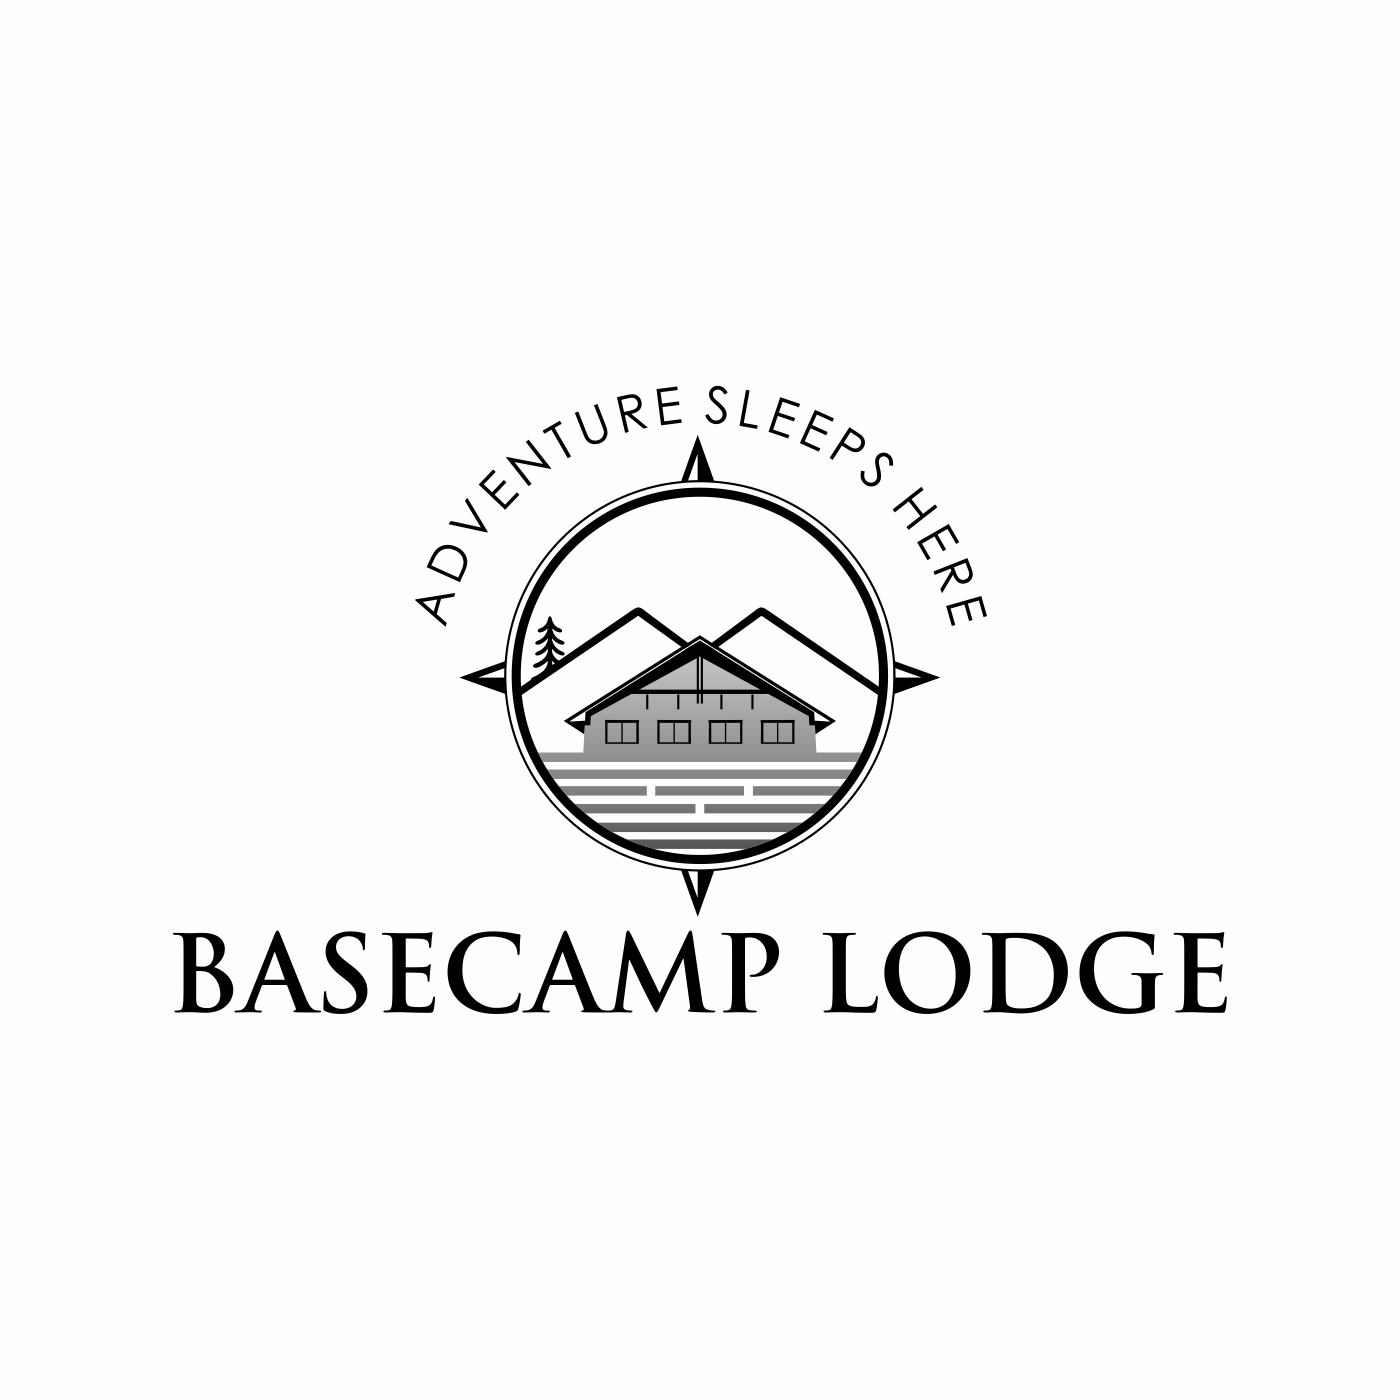 need a fun but clean logo for a motel going to re brand to a lodge